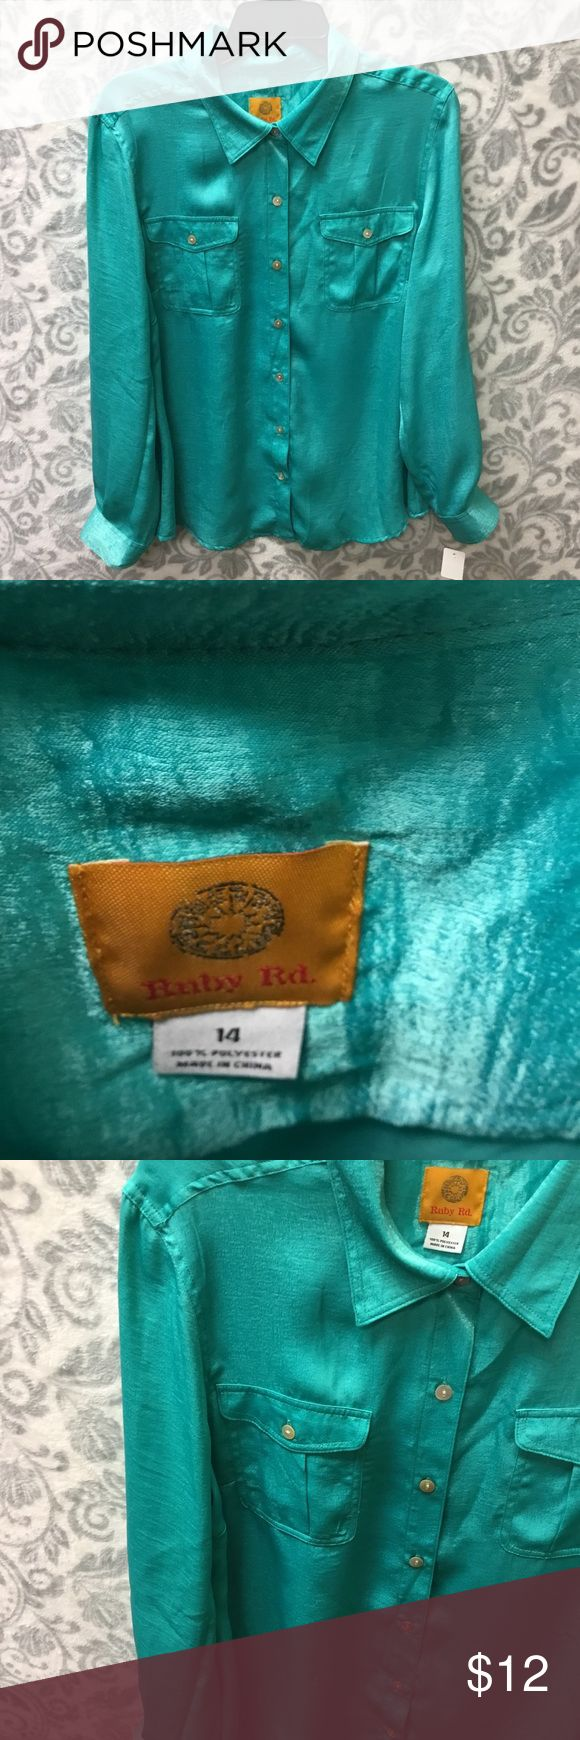 Seafoam green/turquoise ruby rd. button down Size 14 blouse in excellent condition  It's so hard to capture blues and greens on camera. The color is most like a shiny version of the fifth picture  Buttons all attached and sturdy  Size 14 (large/xlarge)  If you have any questions, please feel free to ask!  Bundle and save! Ruby Rd. Tops Button Down Shirts